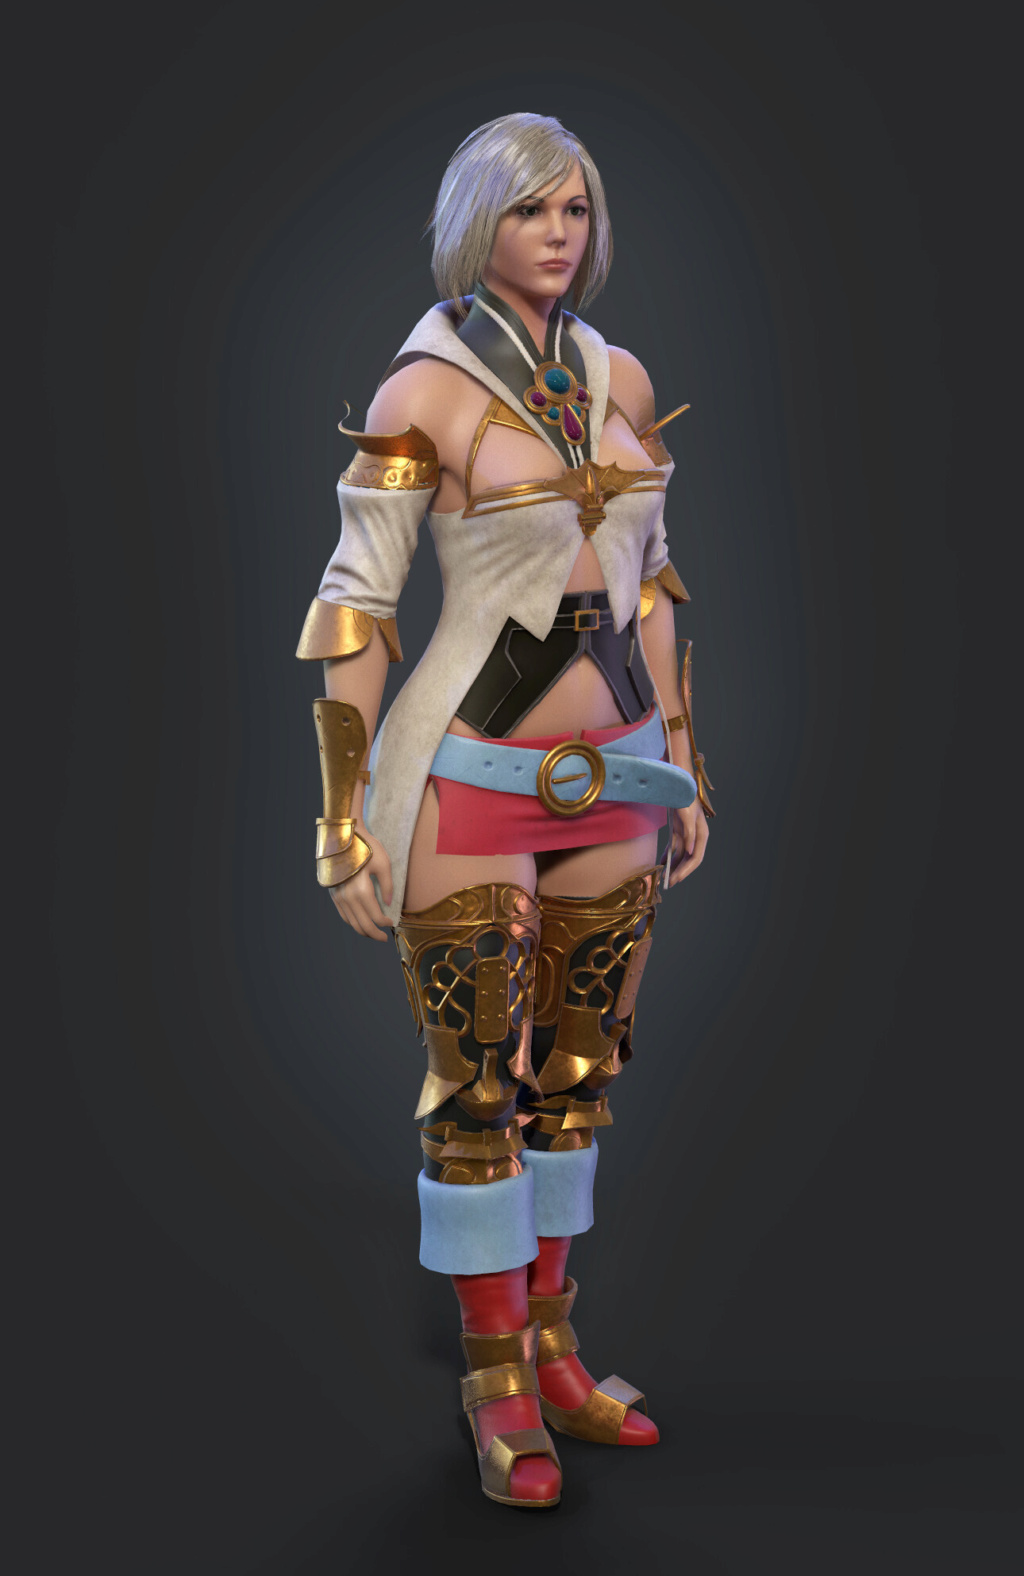 2 - Top 3 female characters from Video Games that should be made Pavel-10